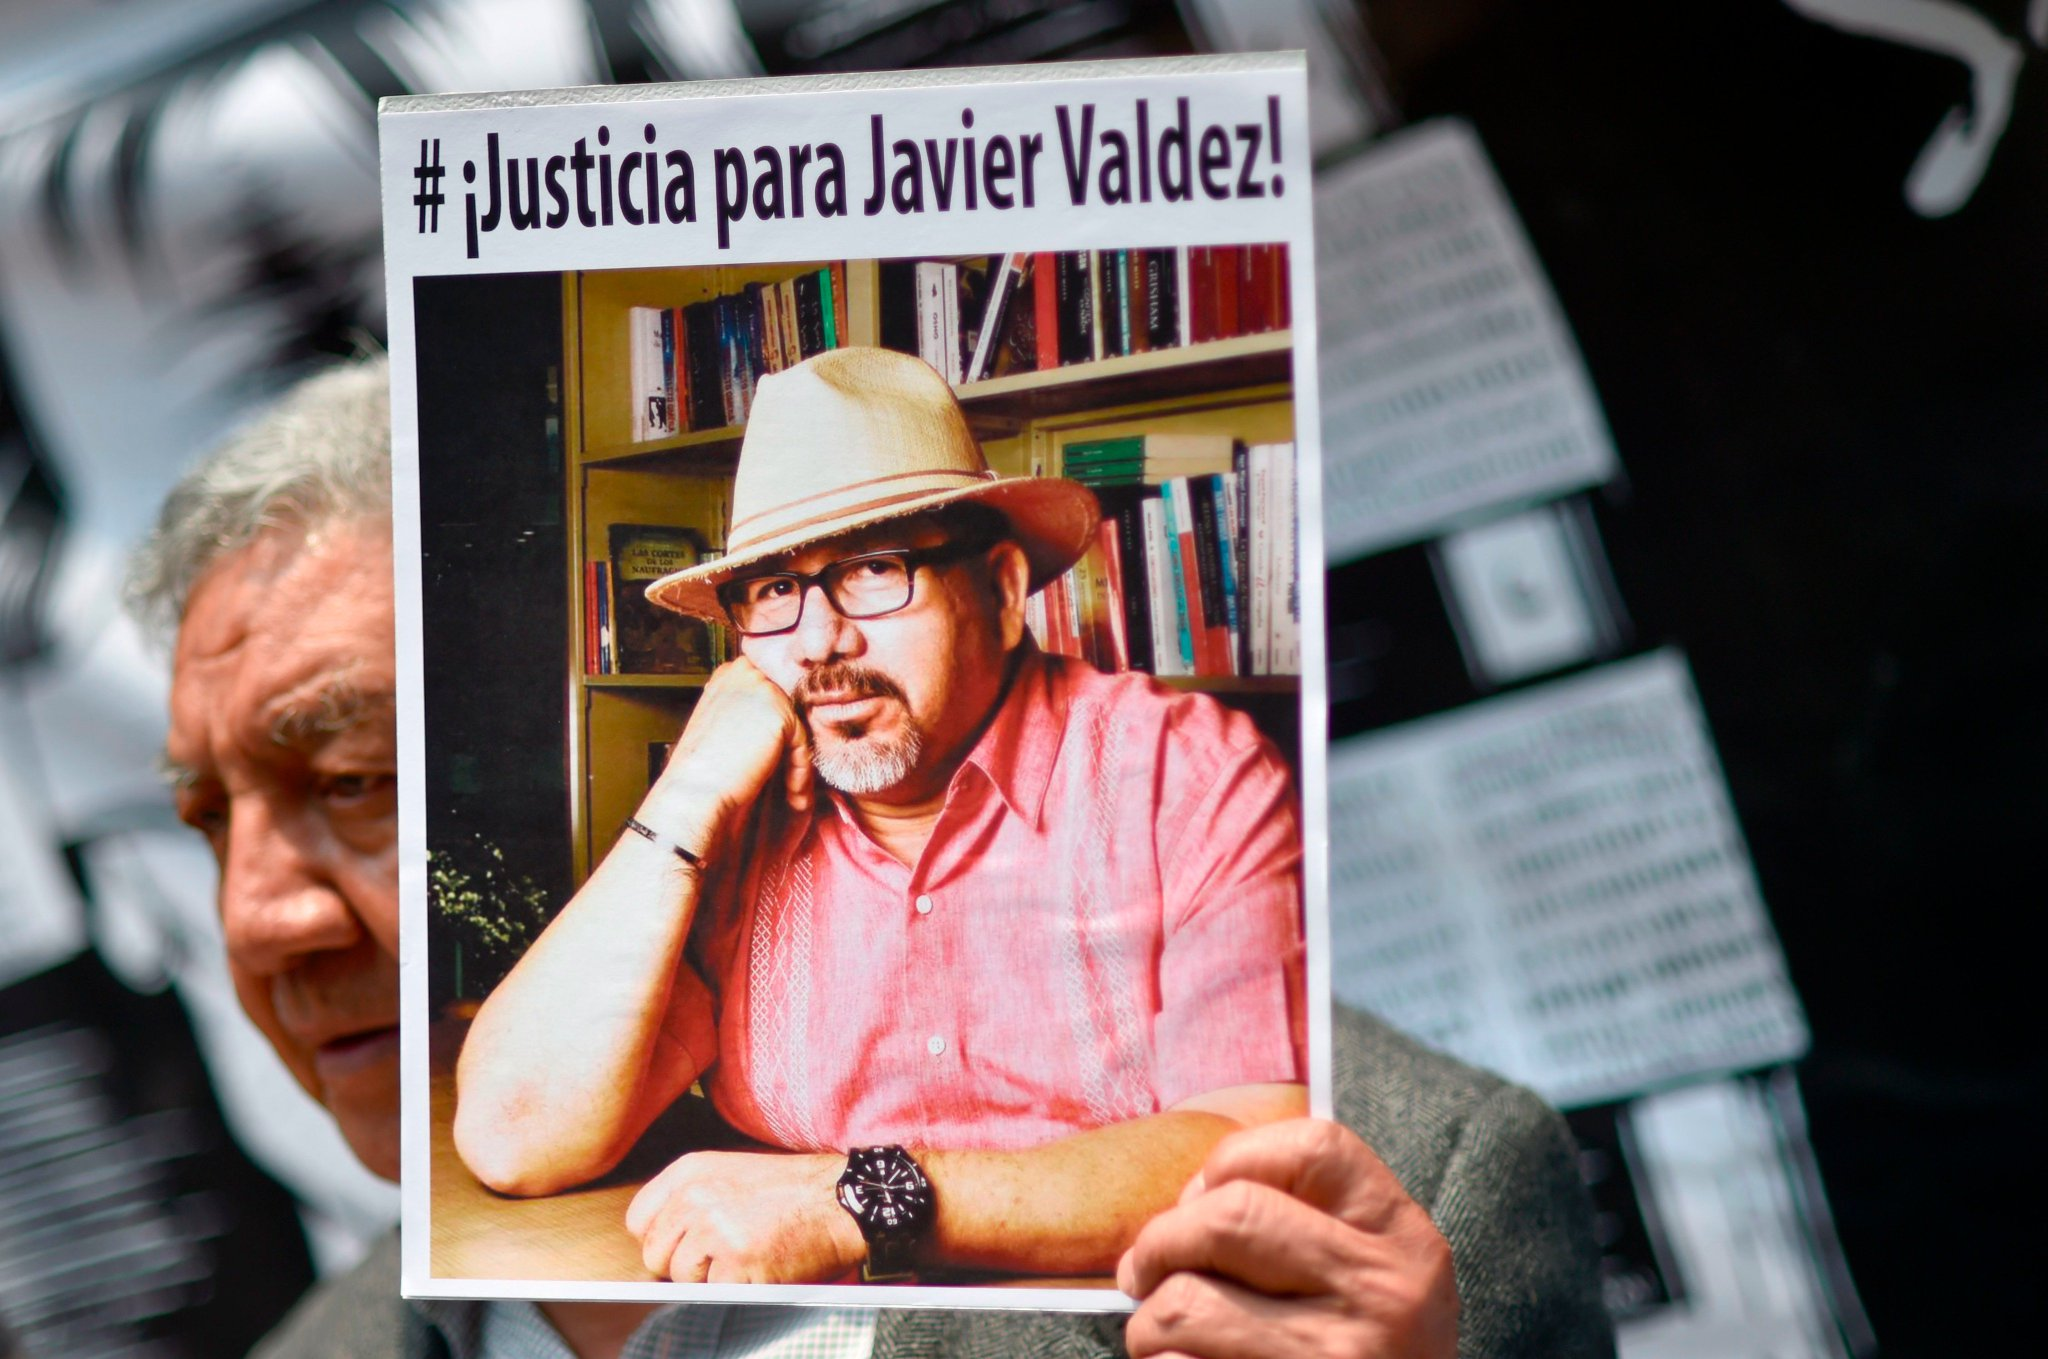 1 month after Javier Valdez was murdered, 7 journalists reflect: https://t.co/gZ6x6mPwLx #OurVoiceIsOurStrength #NuestraVozesNuestraFuerza https://t.co/jcUSwVEsQZ